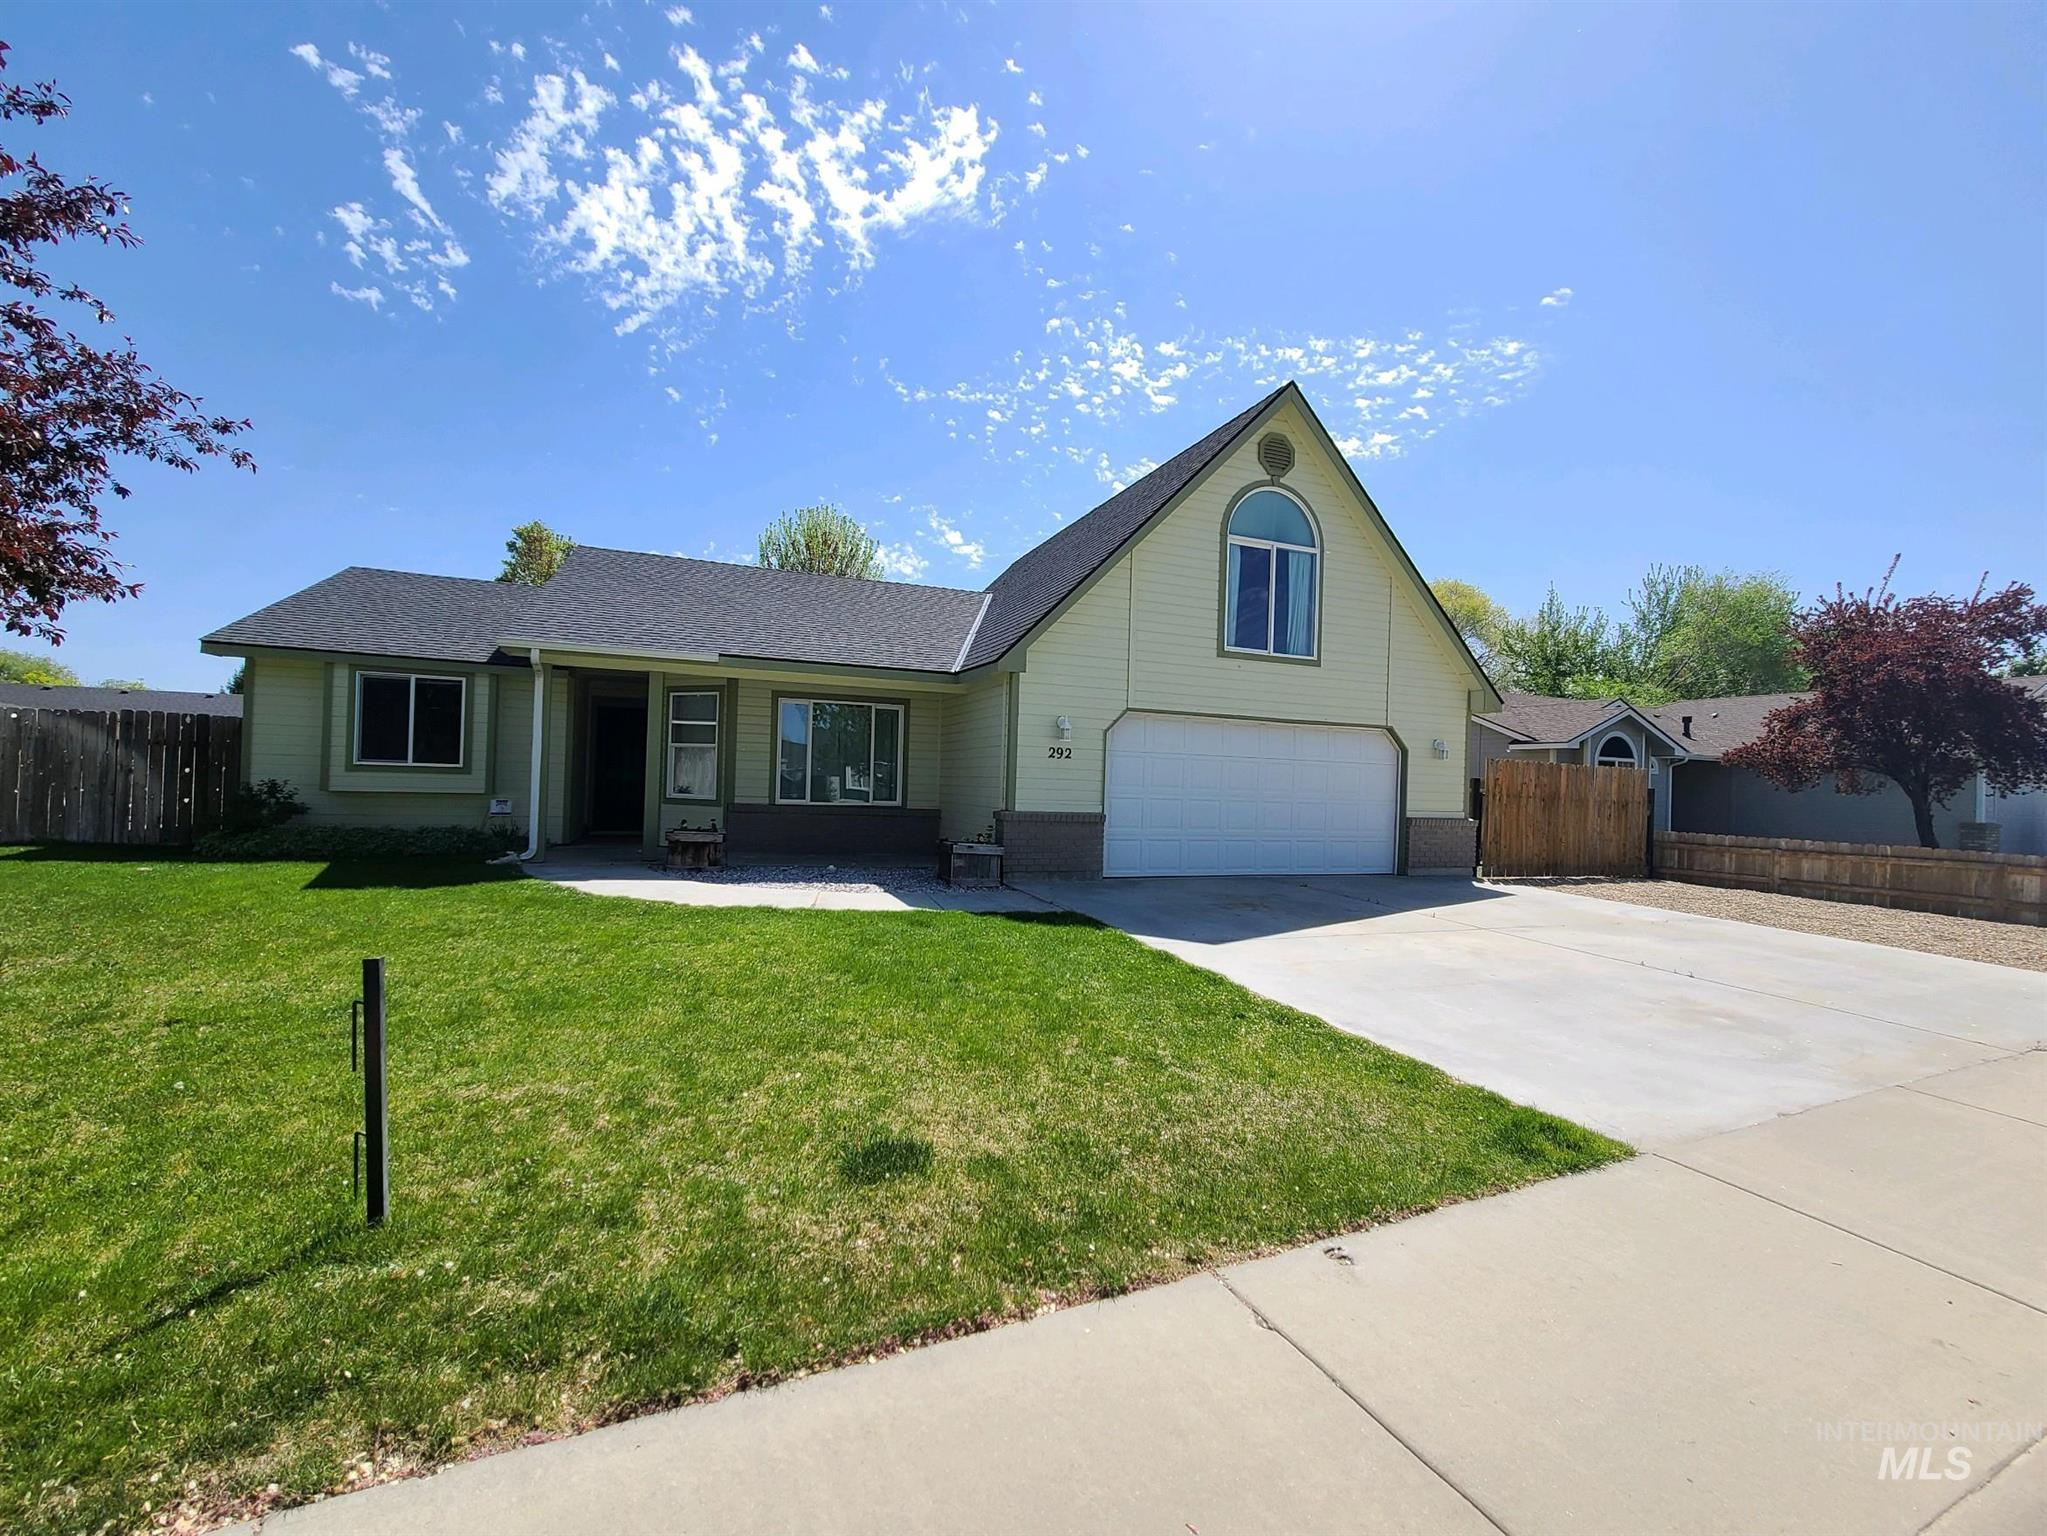 292 PACIFIC Property Photo - Middleton, ID real estate listing